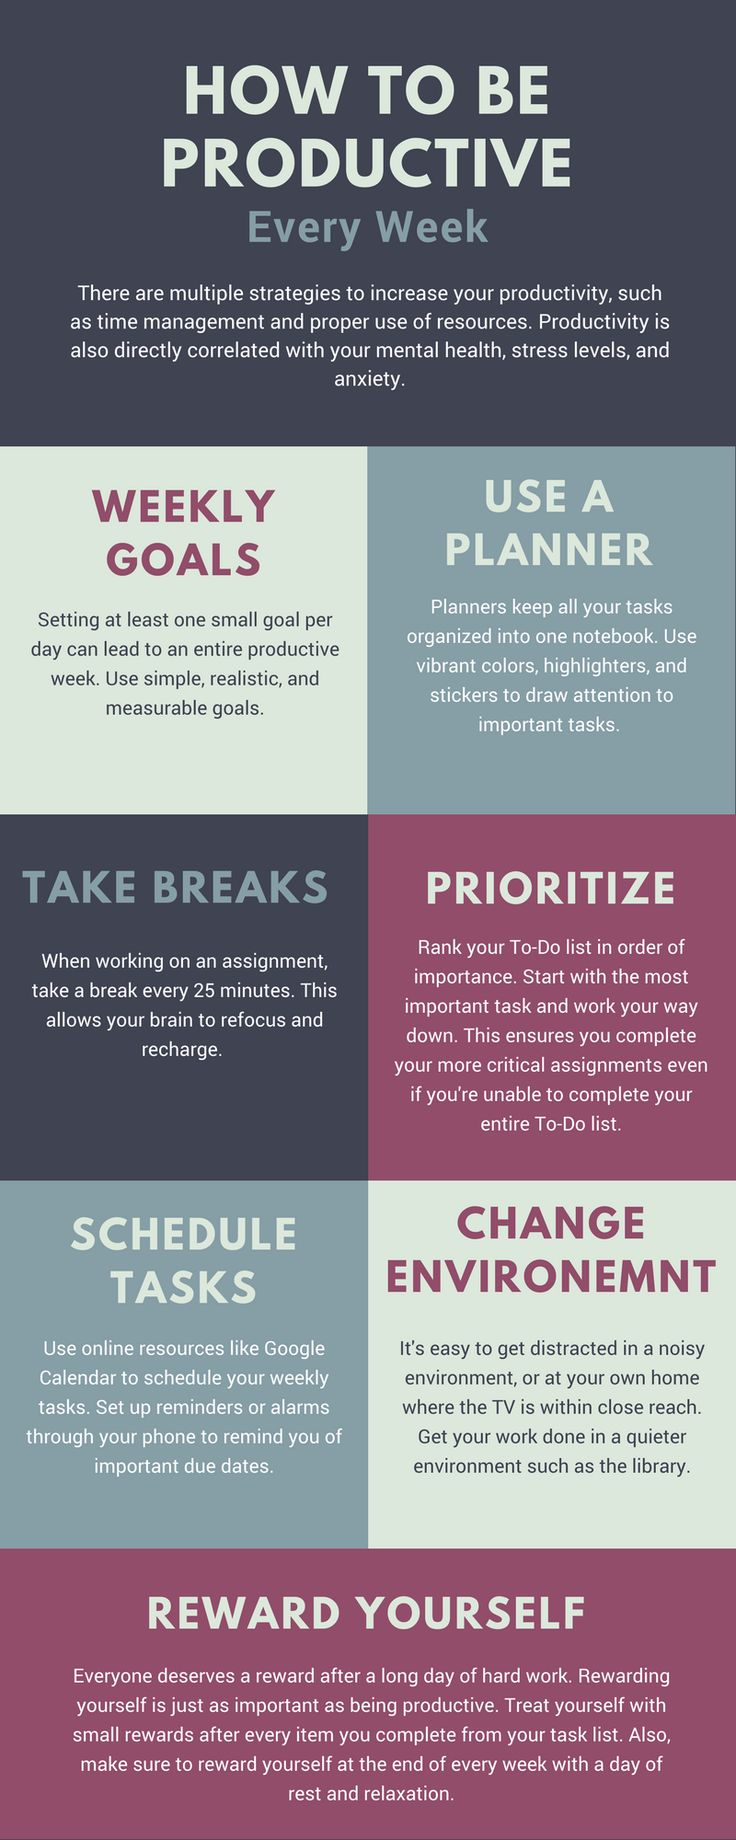 There are multiple strategies to increase your productivity, such as time management, proper scheduling, and using the right resources. Productivity is also directly correlated with your mental health, stress levels, and anxiety.